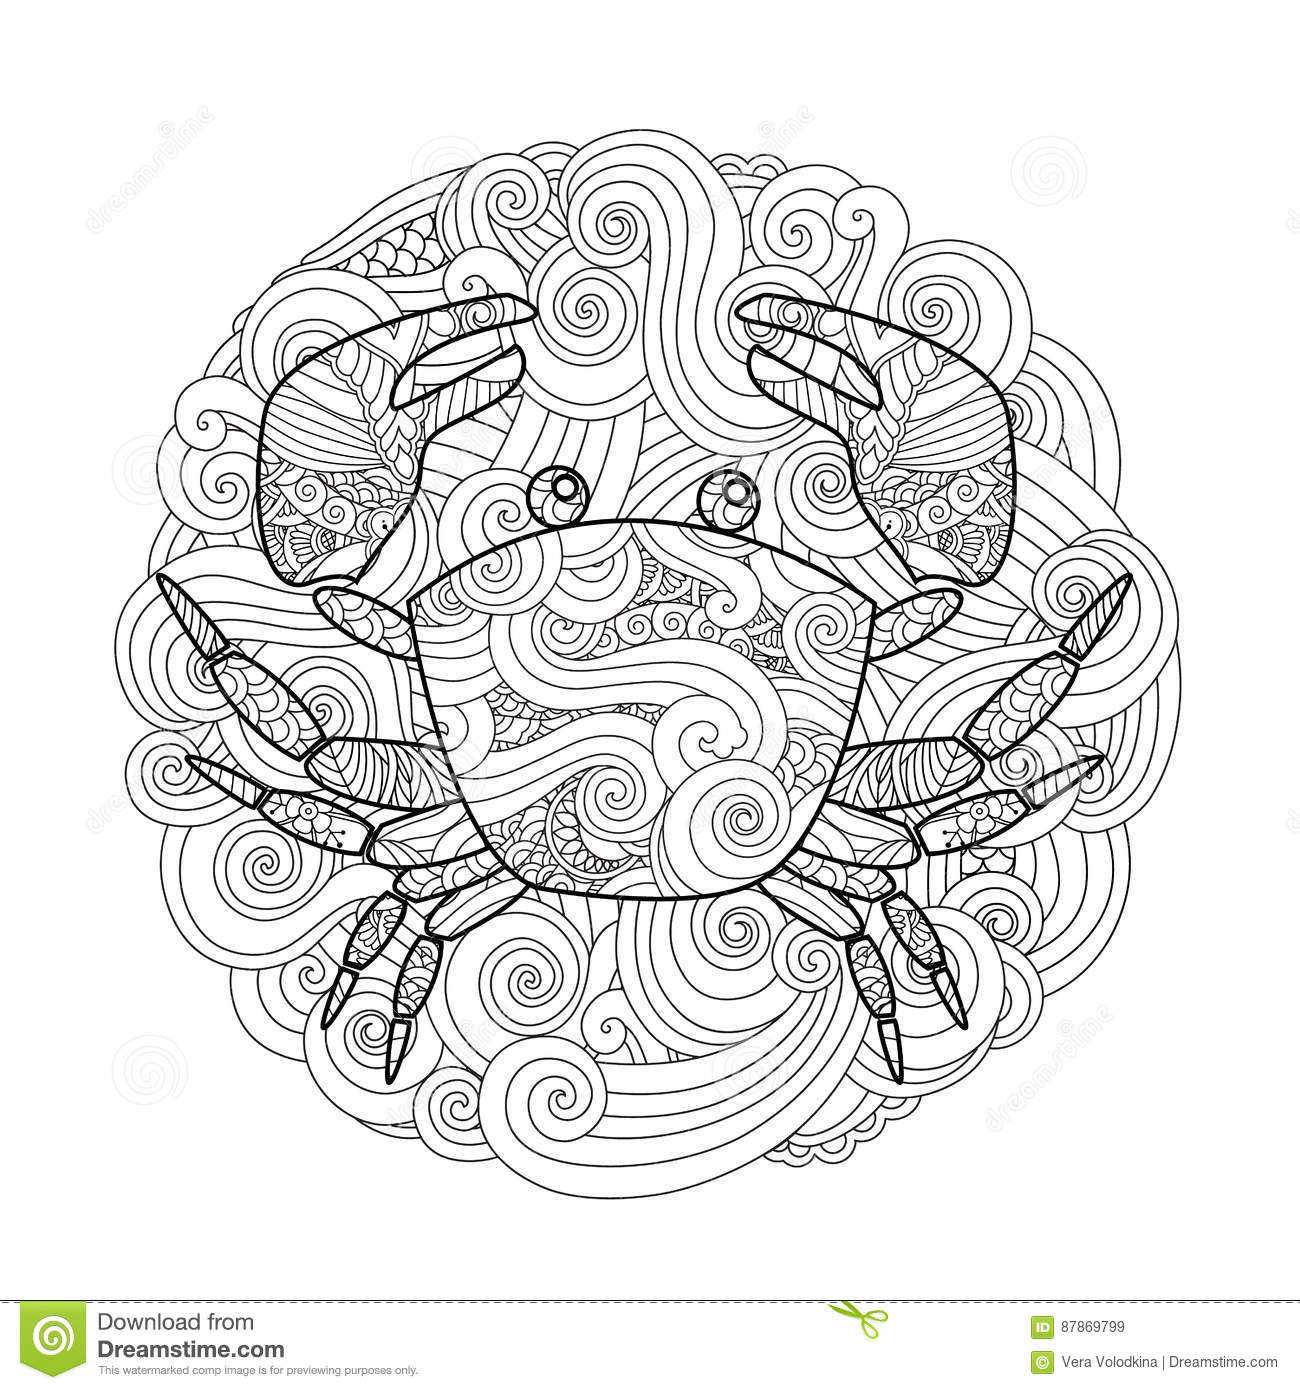 coloring page ornate crab in circle mandala isolated on white